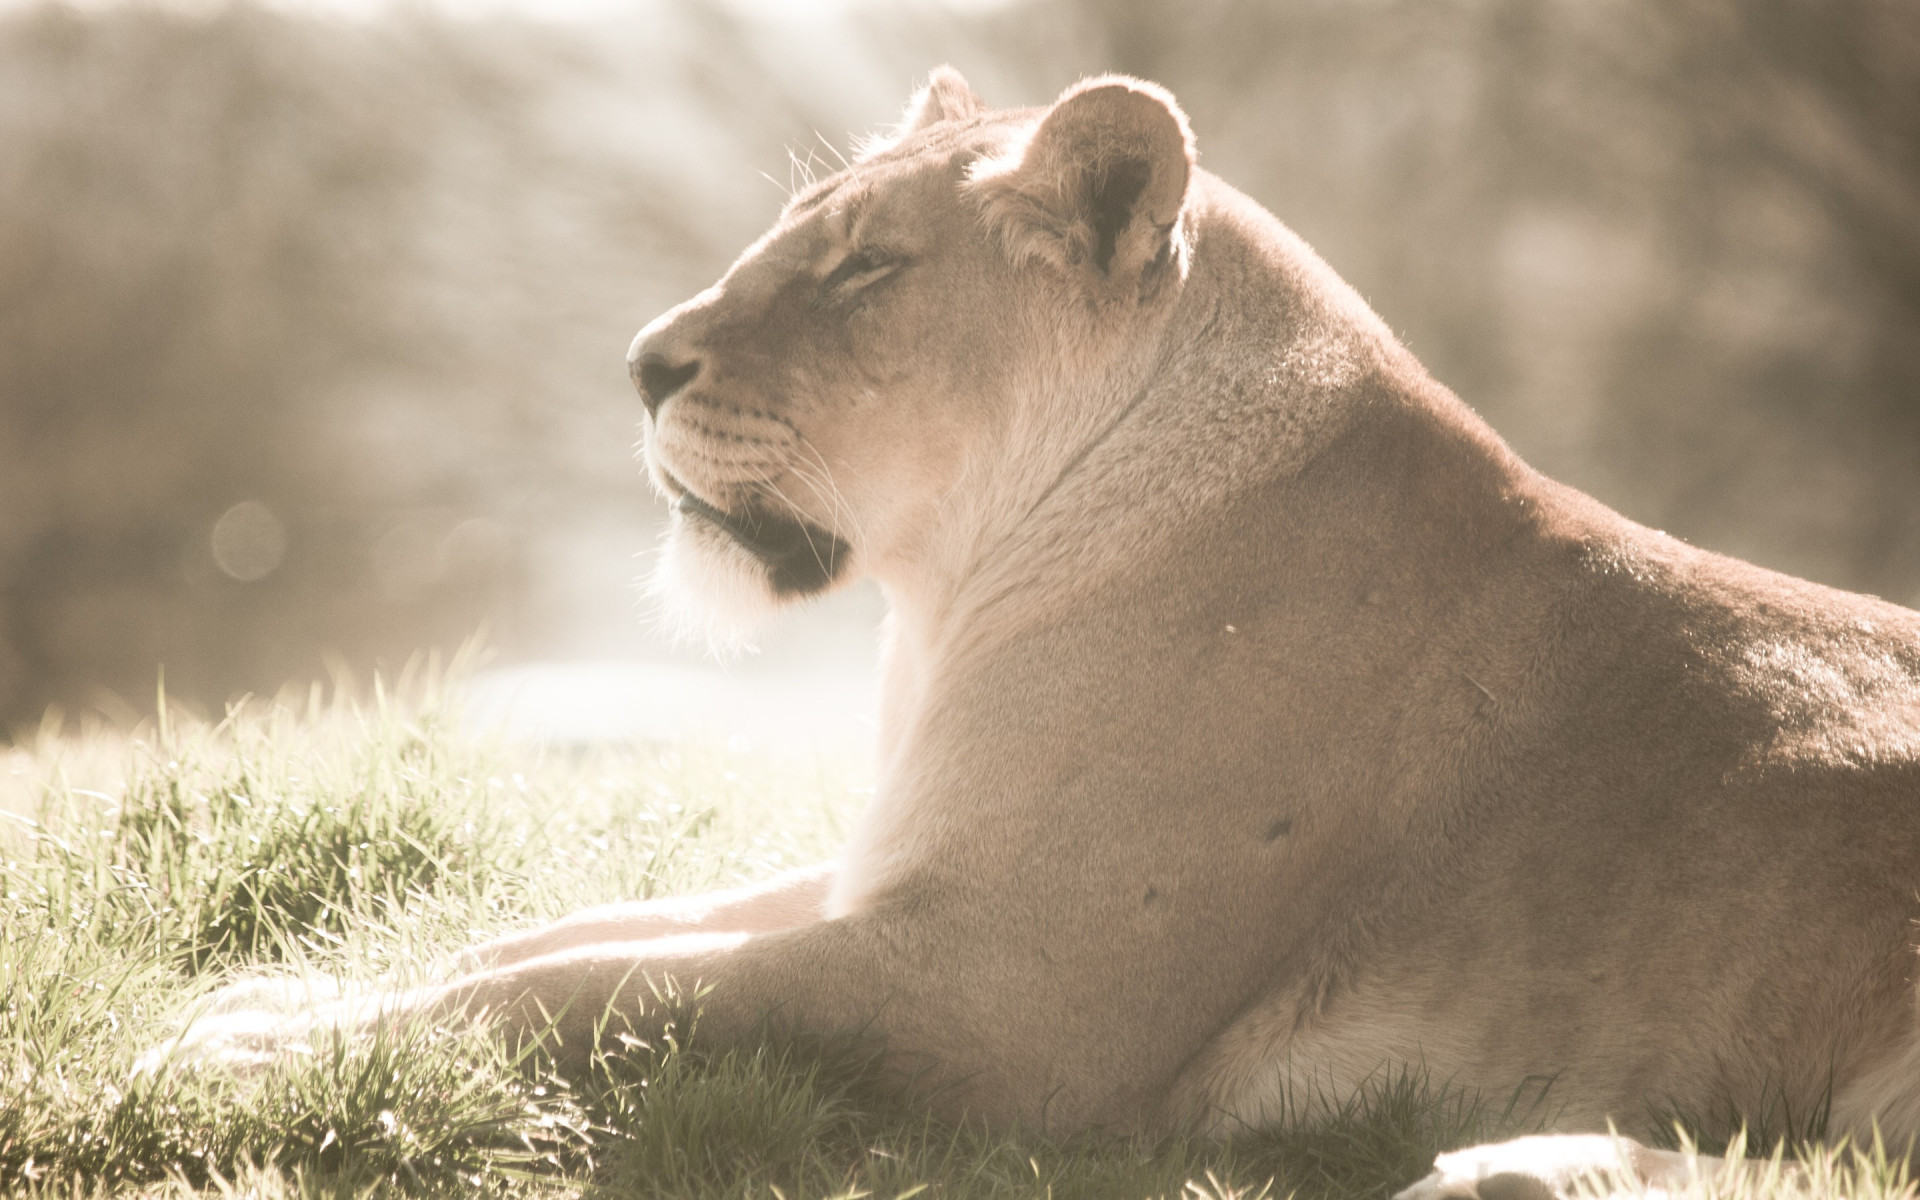 Lioness at Whipsnade Zoo wallpaper 1920x1200